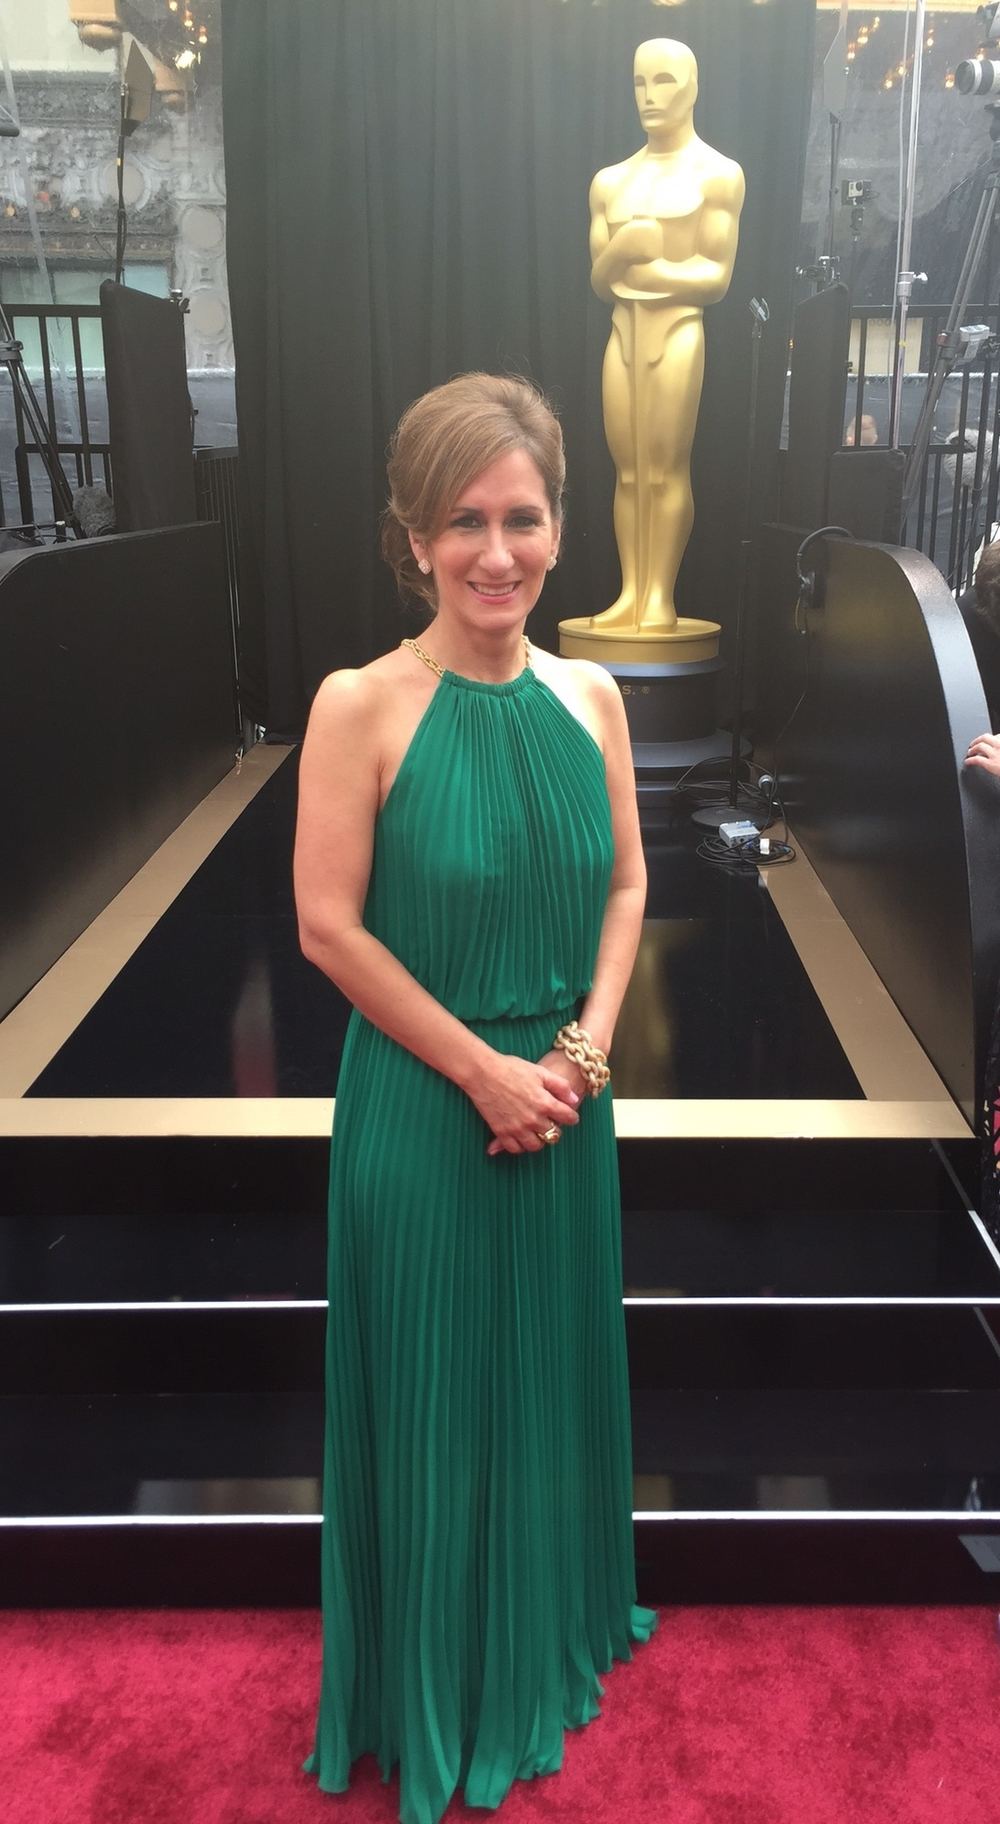 Jo D. at the Oscars